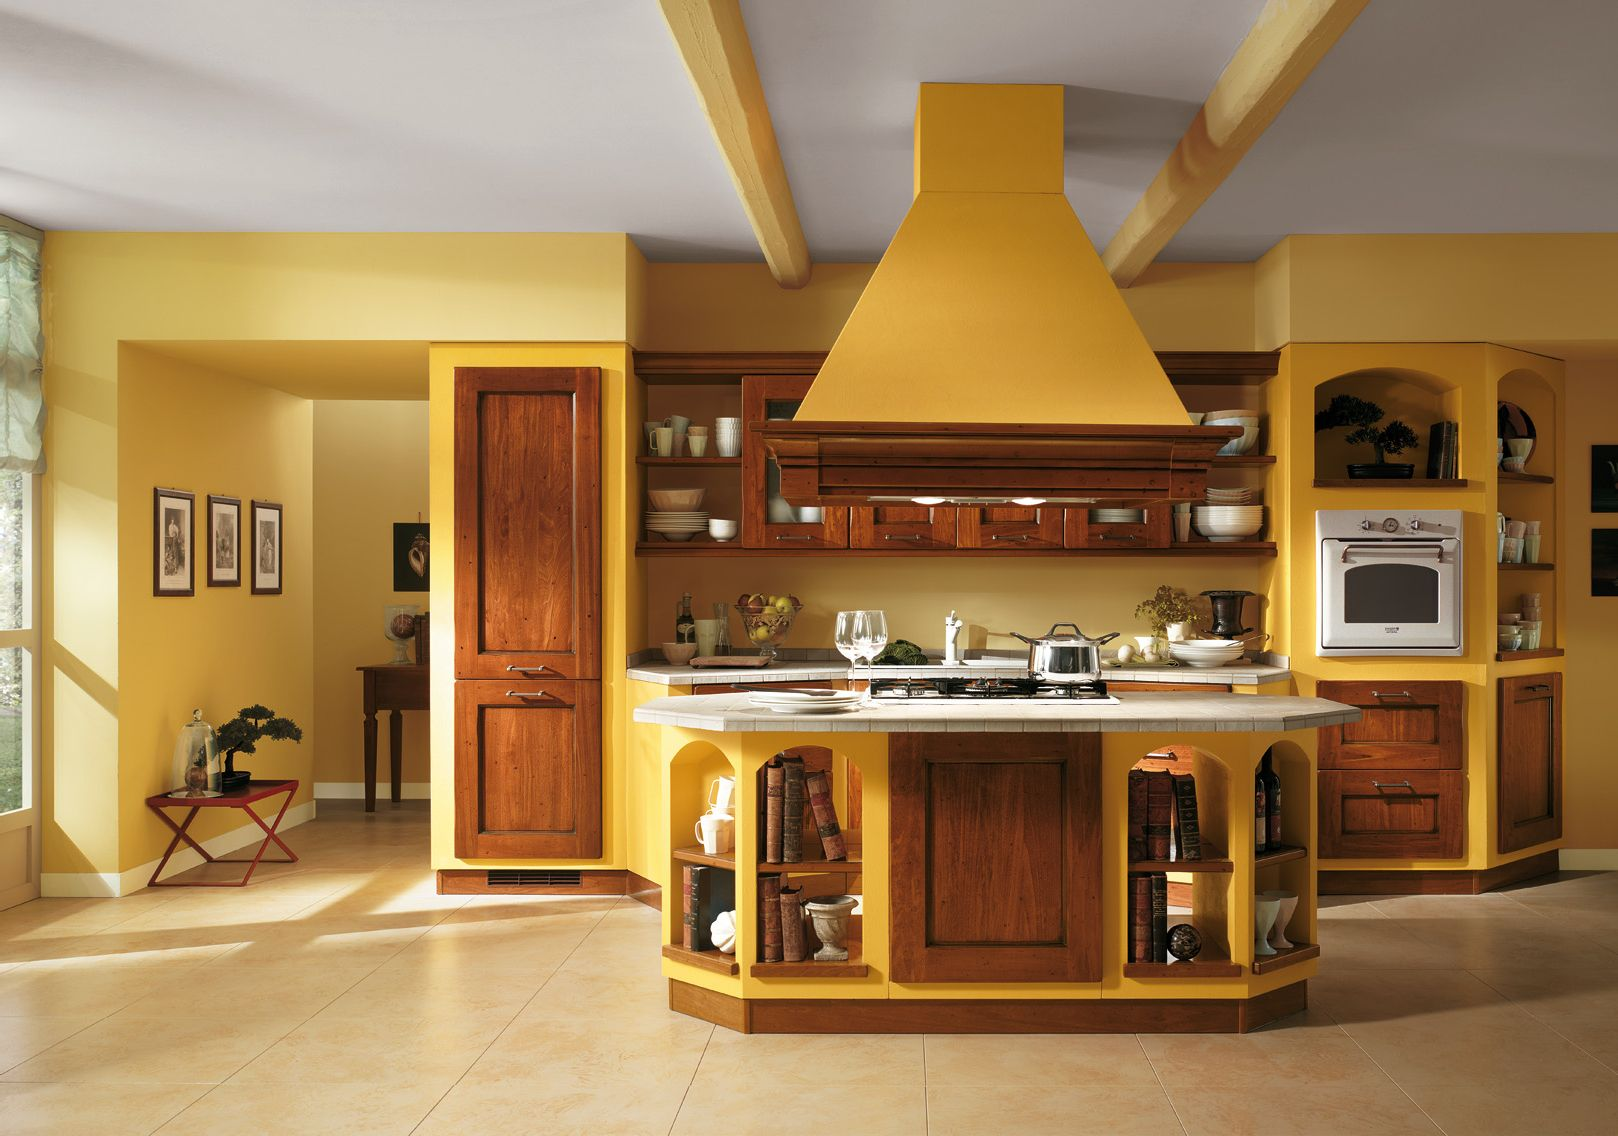 Italian Kitchen Color Schemes For Open Interior Design